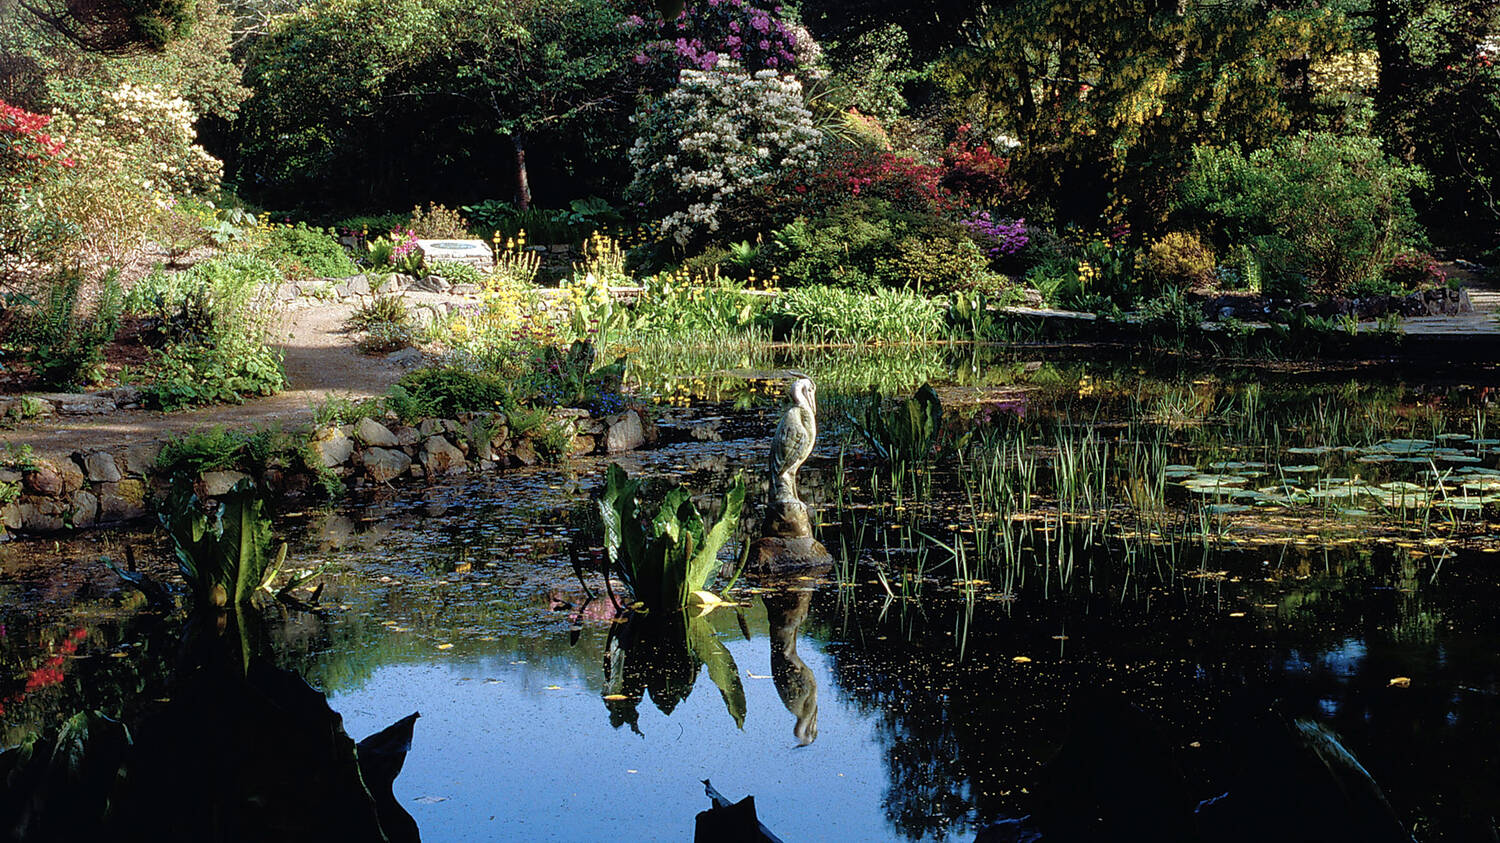 A pond in a garden, surrounded with colourful flower beds and rhododendrons in bloom. A statue of a heron stands in the middle of the pond.